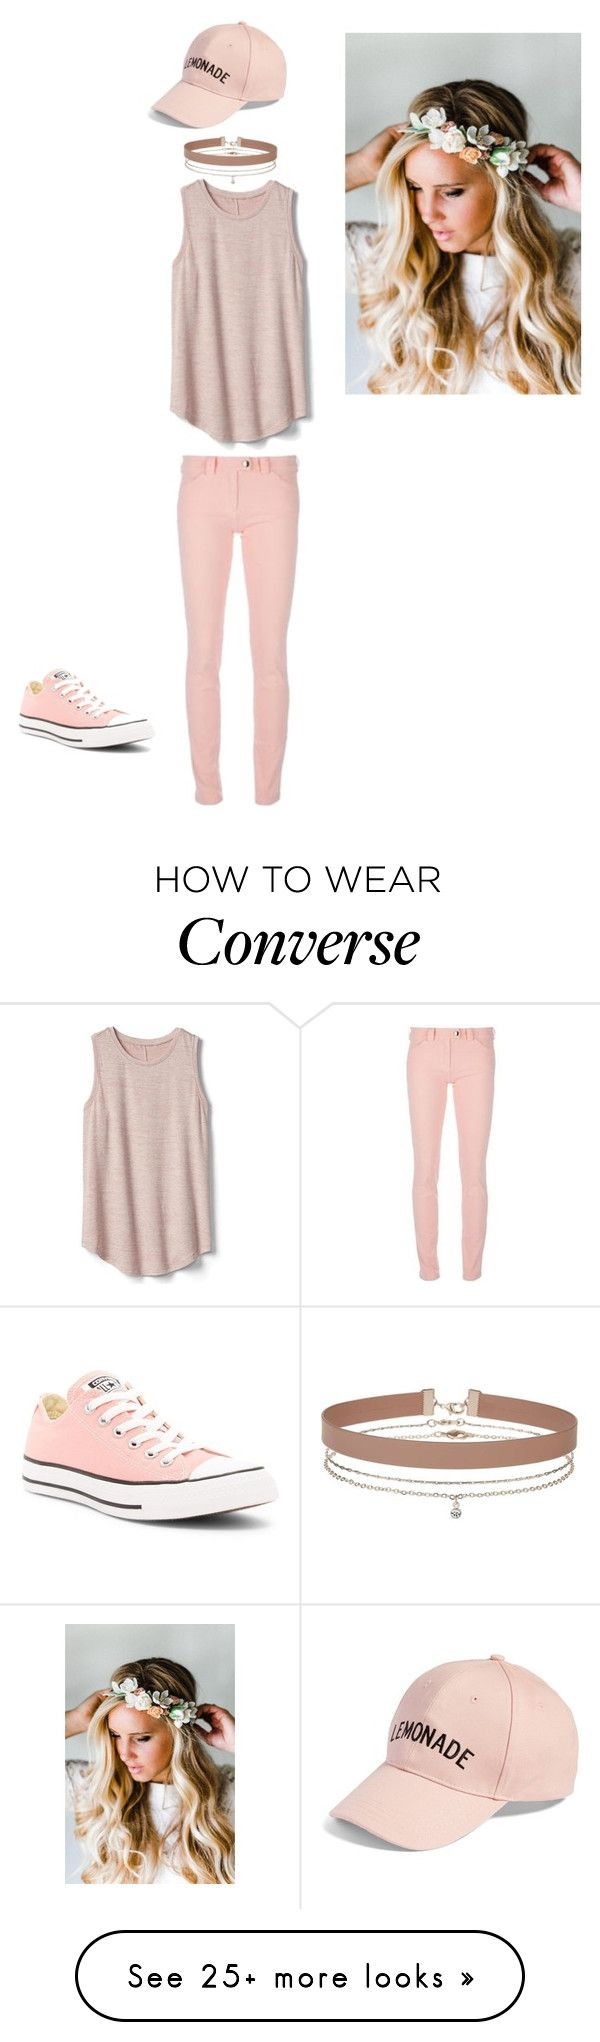 """Untitled #79"" by winchester-rose on Polyvore featuring Gap, Converse, Balenciaga, Emily Rose Flower Crowns, Amici Accessories and Miss Selfridge"